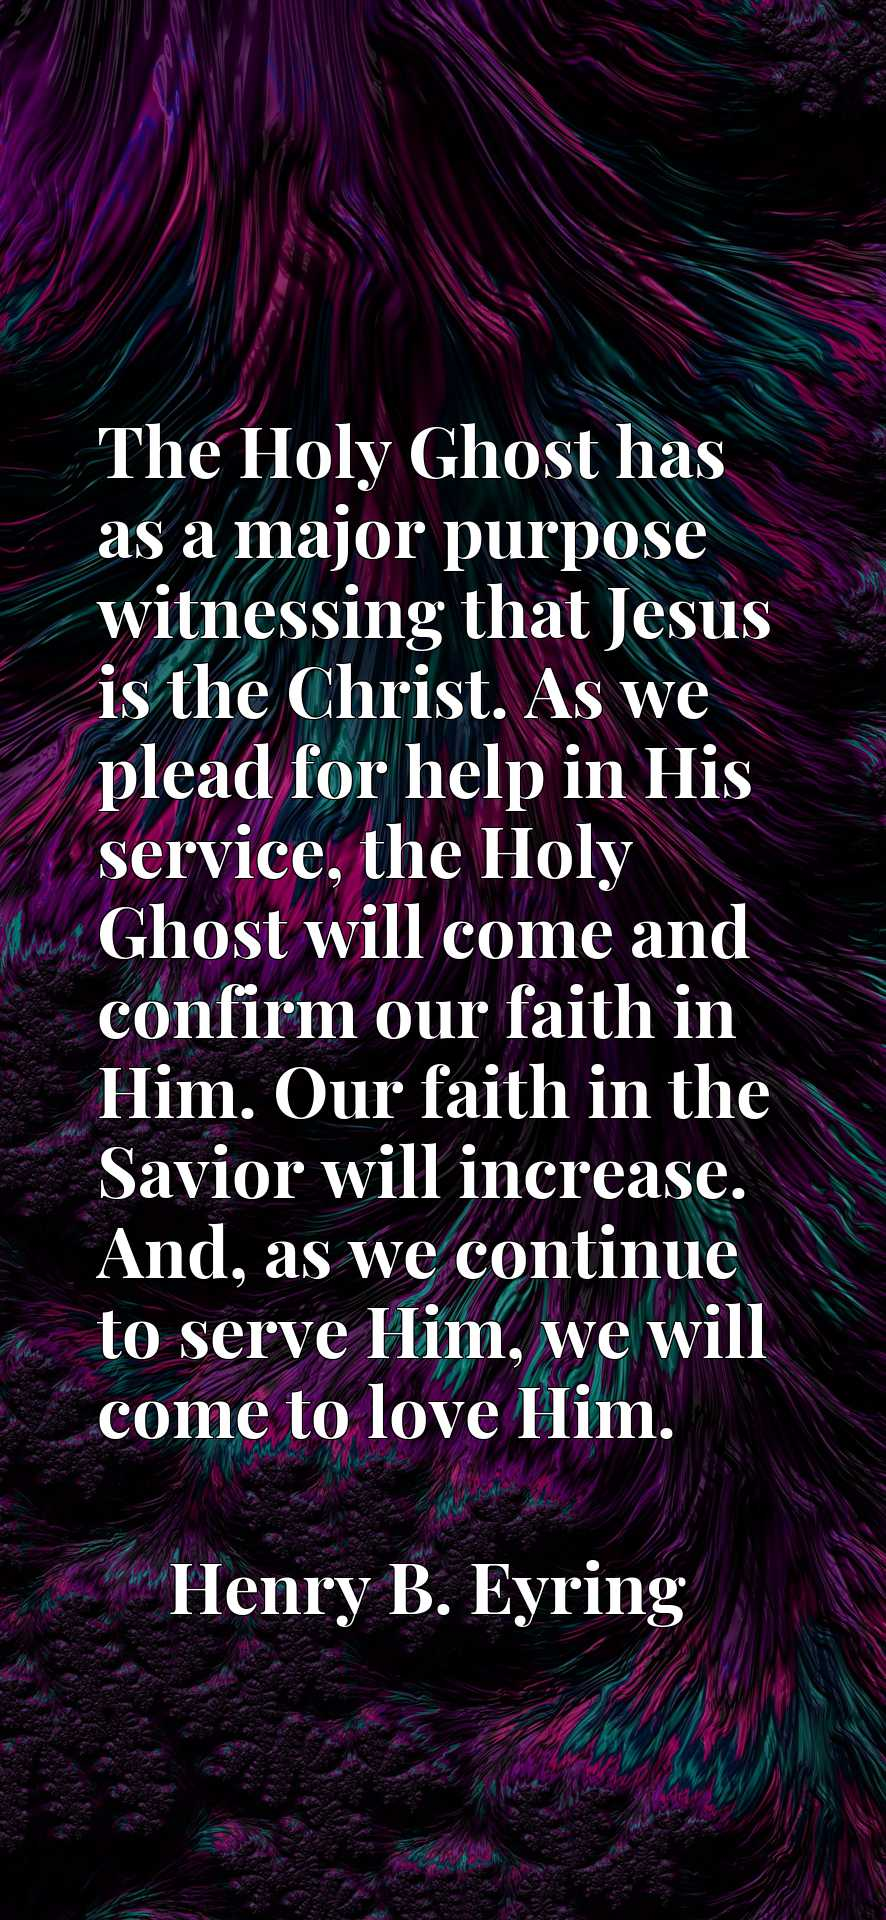 The Holy Ghost has as a major purpose witnessing that Jesus is the Christ. As we plead for help in His service, the Holy Ghost will come and confirm our faith in Him. Our faith in the Savior will increase. And, as we continue to serve Him, we will come to love Him.